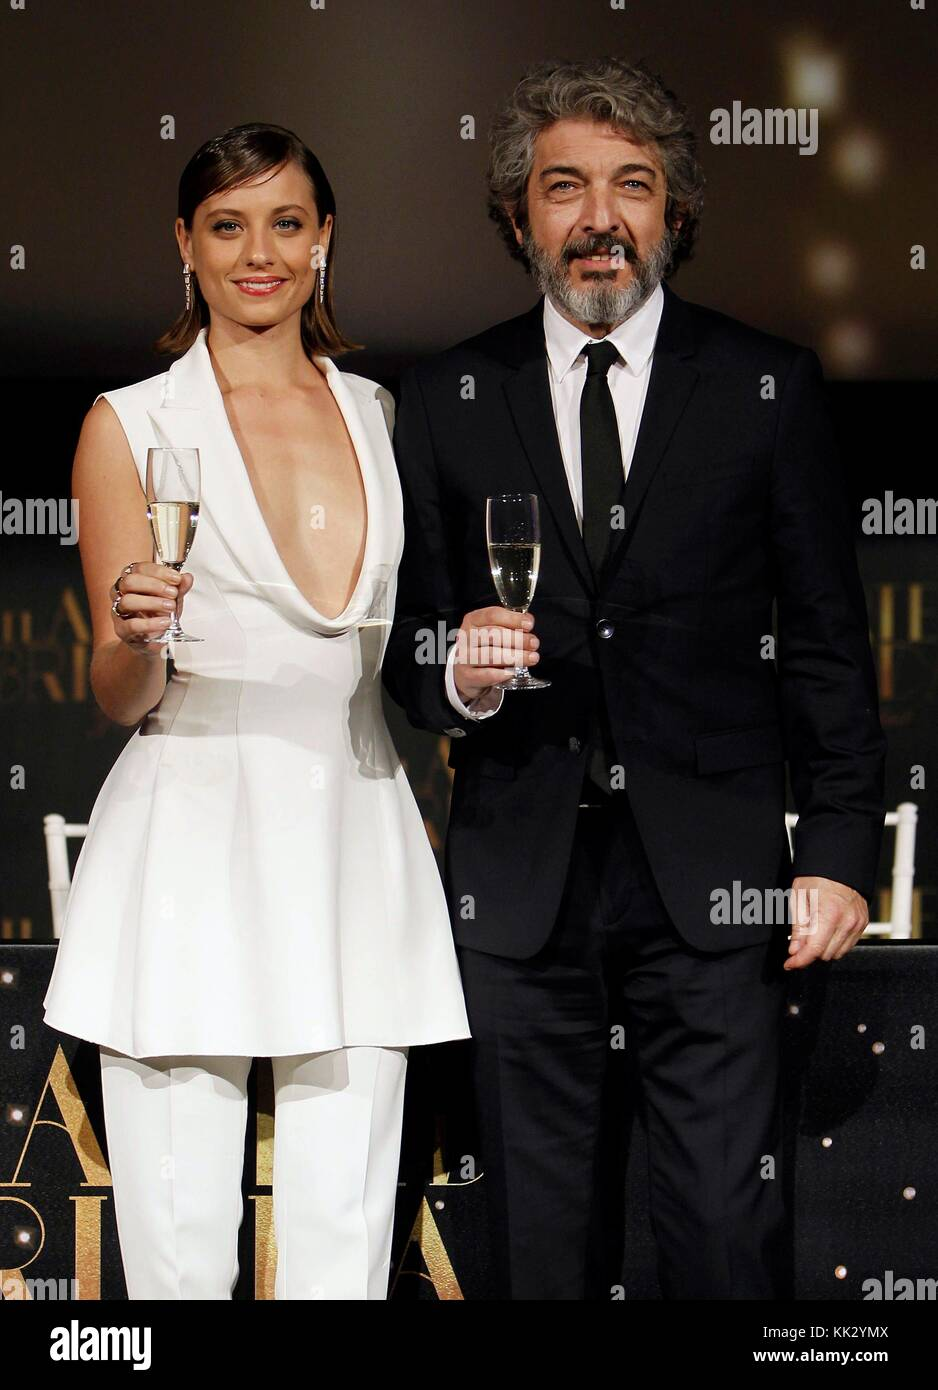 Spanish actress Michelle Jenner (L) and Argentine actor Ricardo Darin (R) toast during the presentation of the new - Stock Image